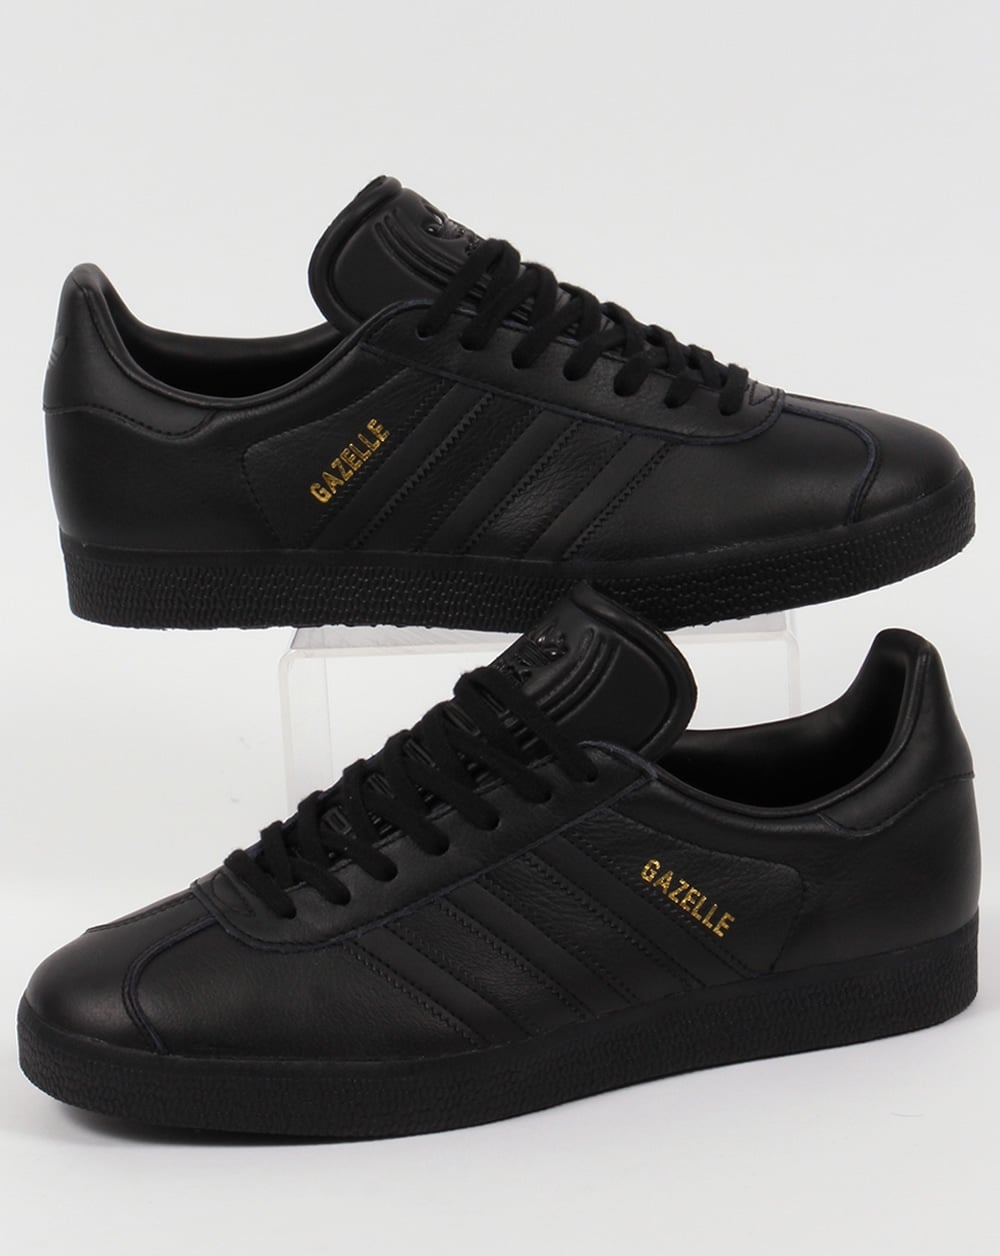 143c869e18a adidas Trainers Adidas Gazelle Leather Trainers Triple Black